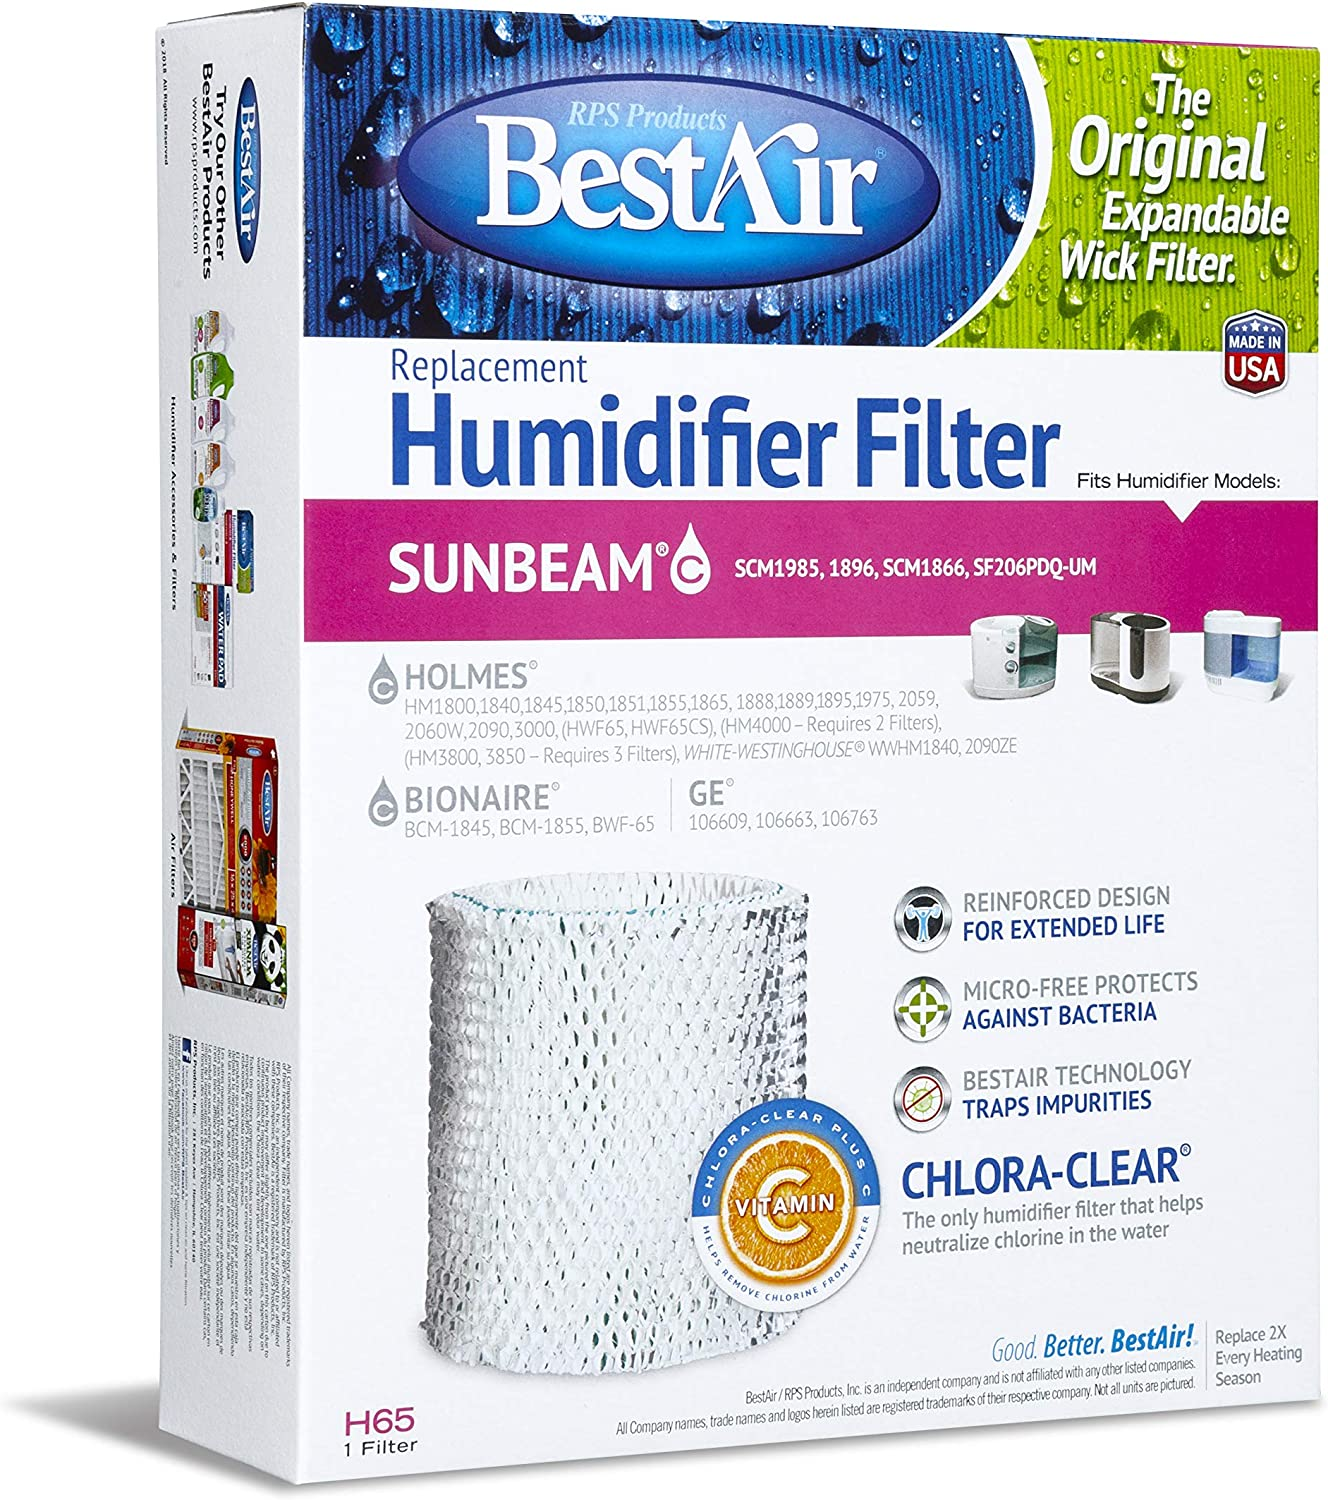 6 Pack Humidifier Filter Wick for GE General Electric 106763